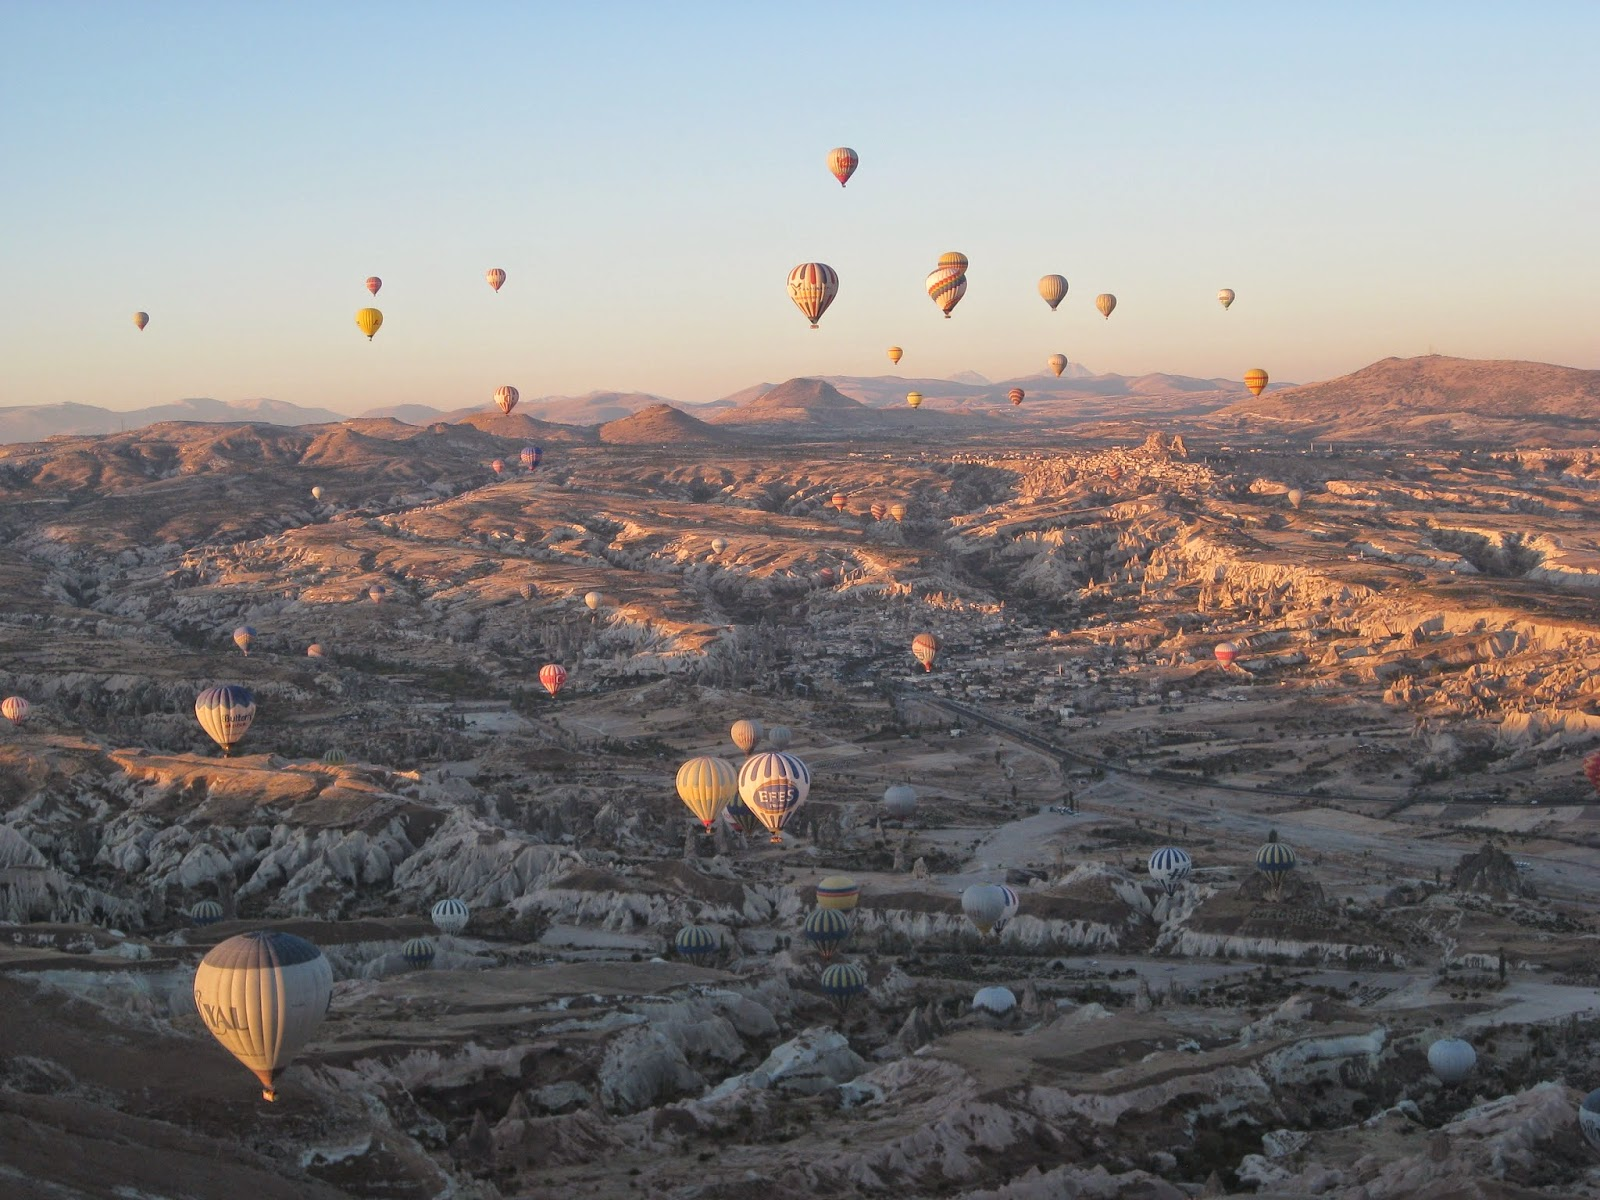 Cappadocia - It's fun to look at other hot air balloons and the scenery